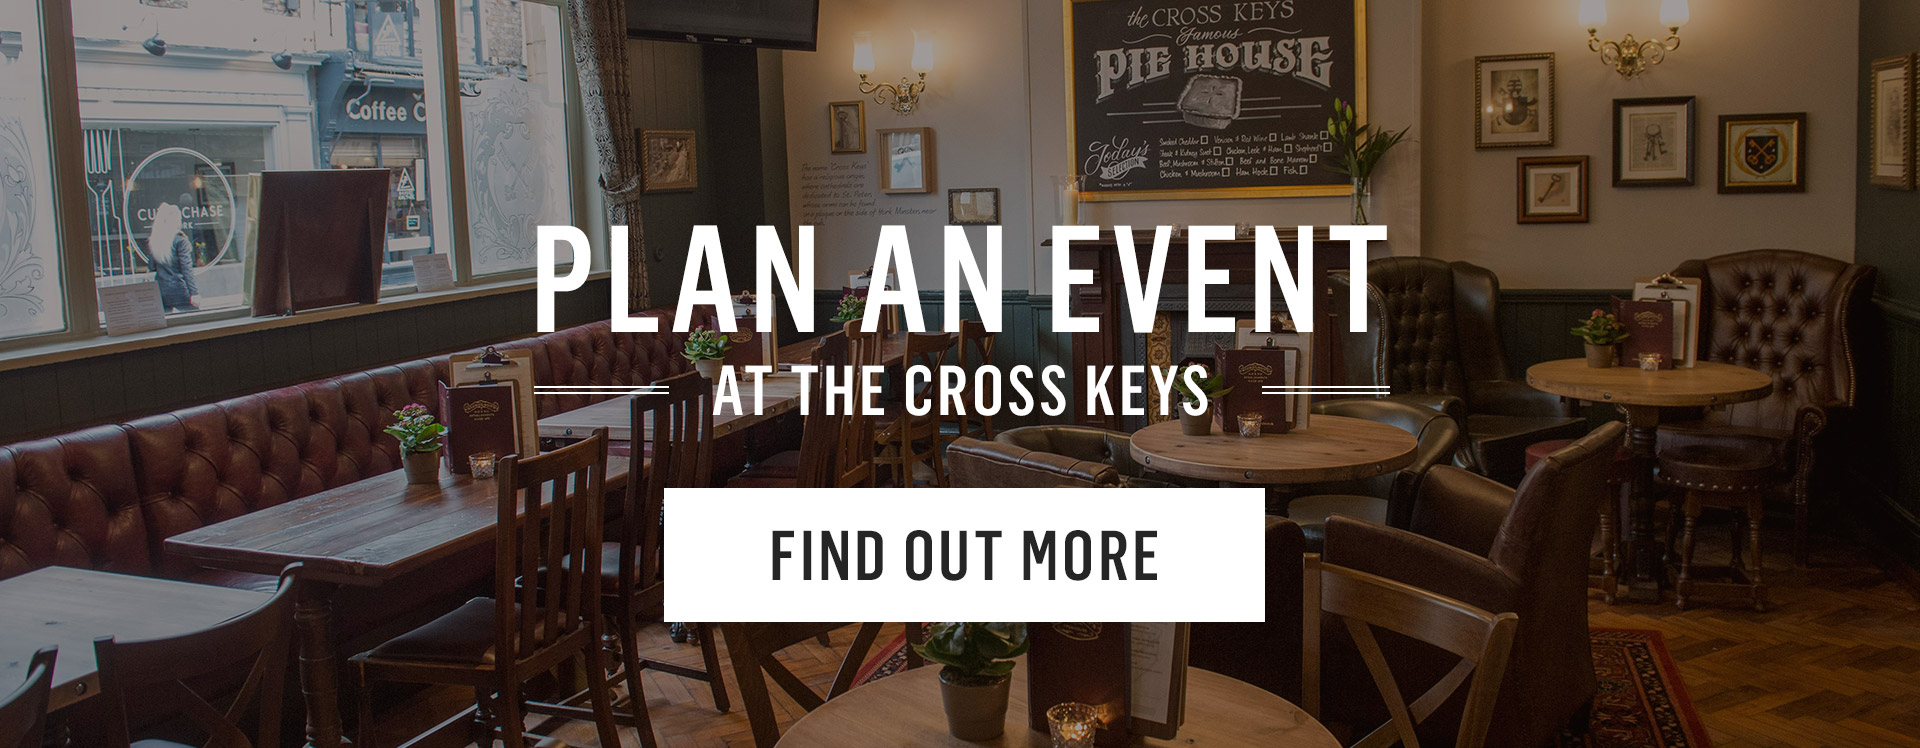 crosskeys-plan-banner-home.jpg